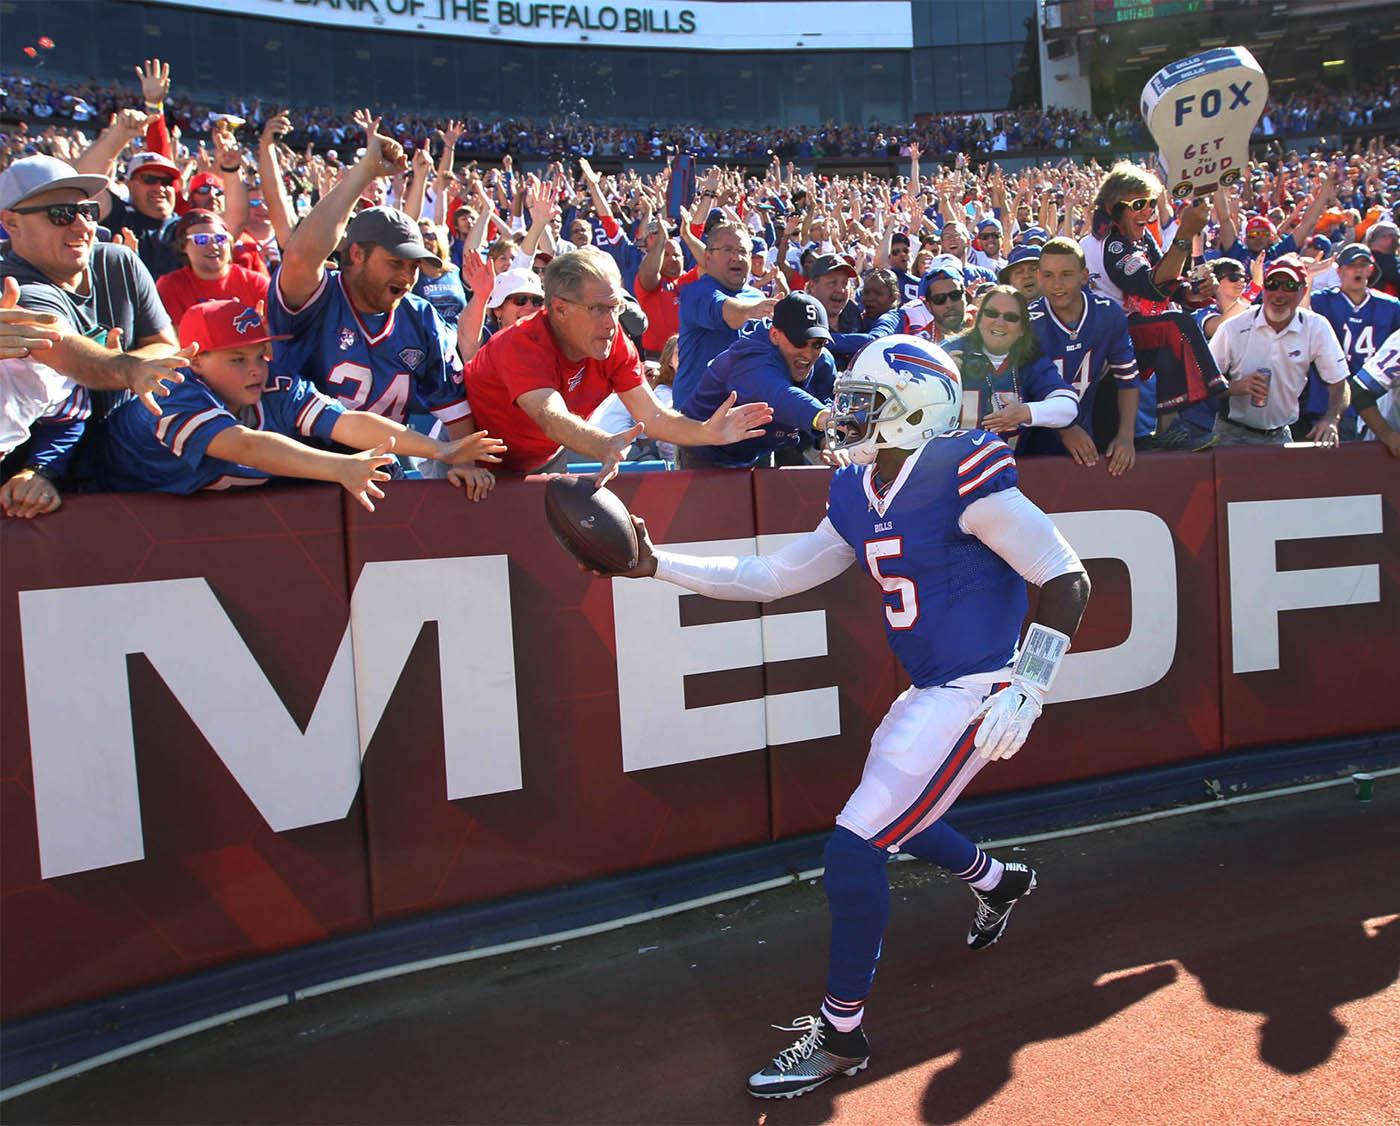 Buffalo Bills quarterback Tyrod Taylor celebrates his rushing touchdown in the third quarter against the Arizona Cardinals at New Era Field in Orchard Park, N.Y. on Sunday, Sept. 25, 2016. (James P. McCoy/ Buffalo News)